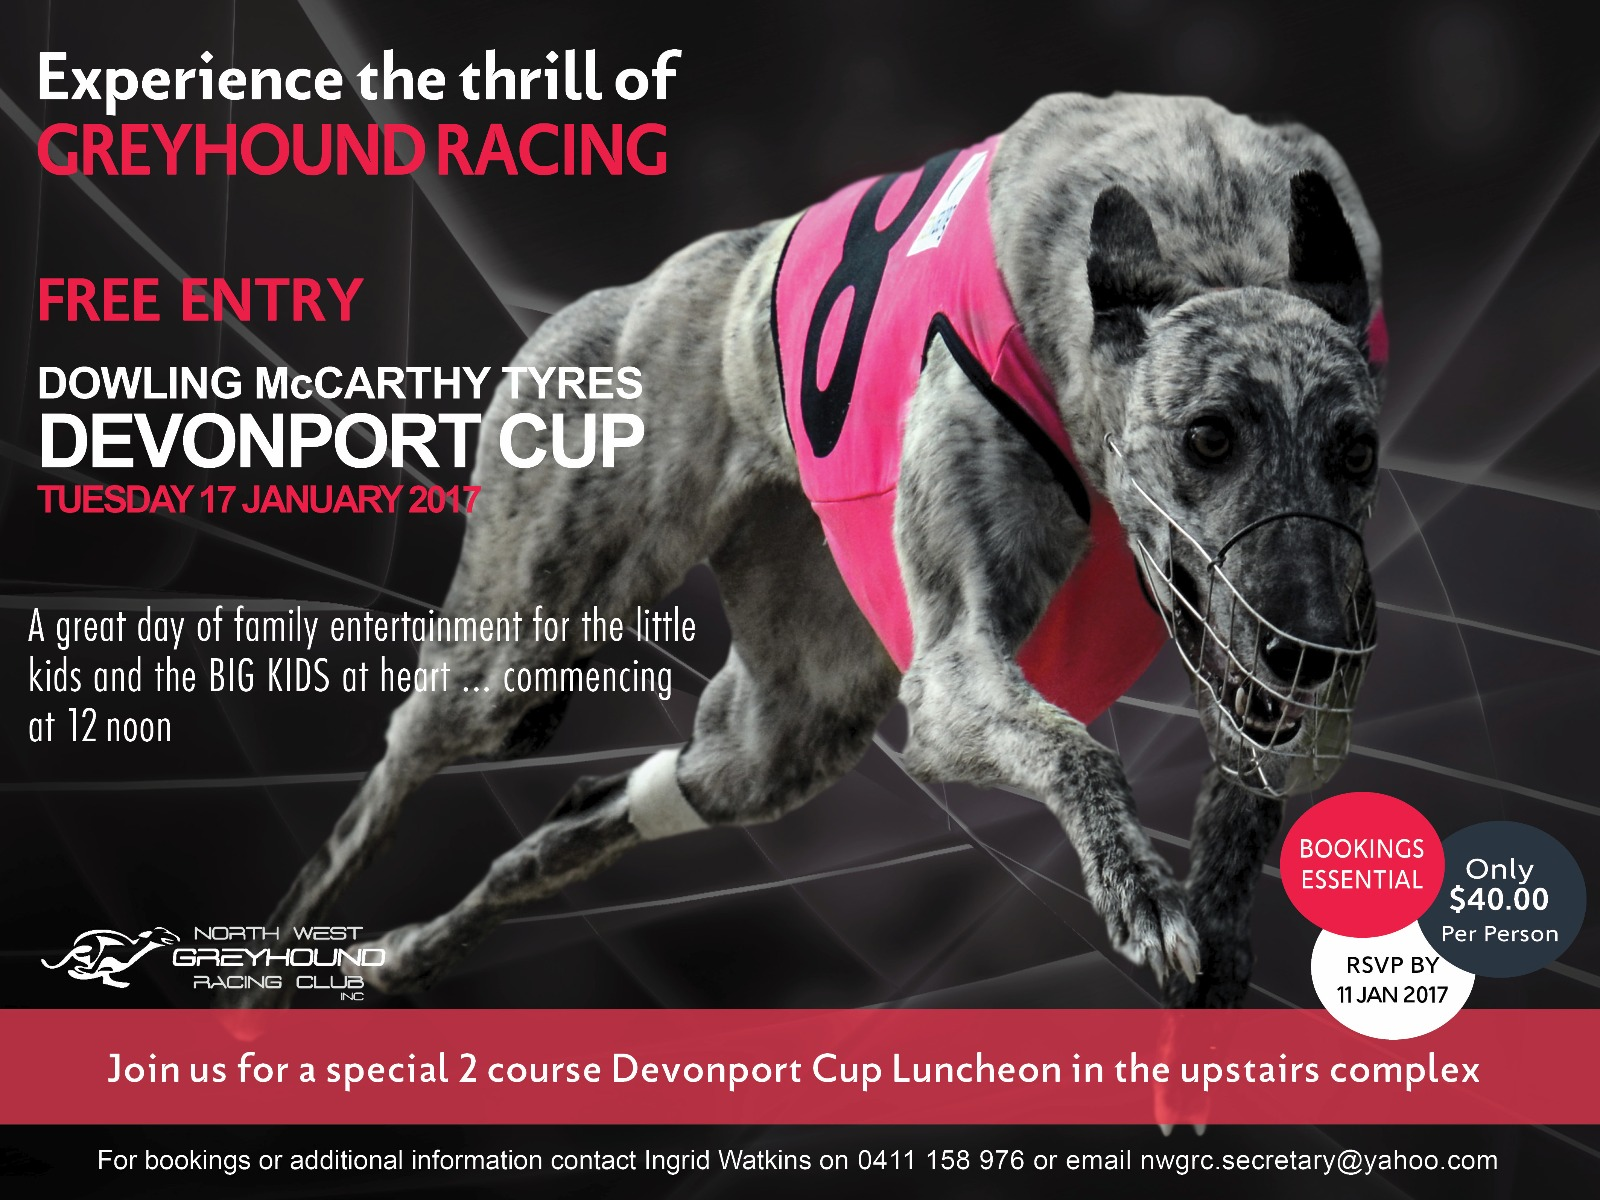 Dowling McCarthy Tyres Devonport Cup Greyhound Racing